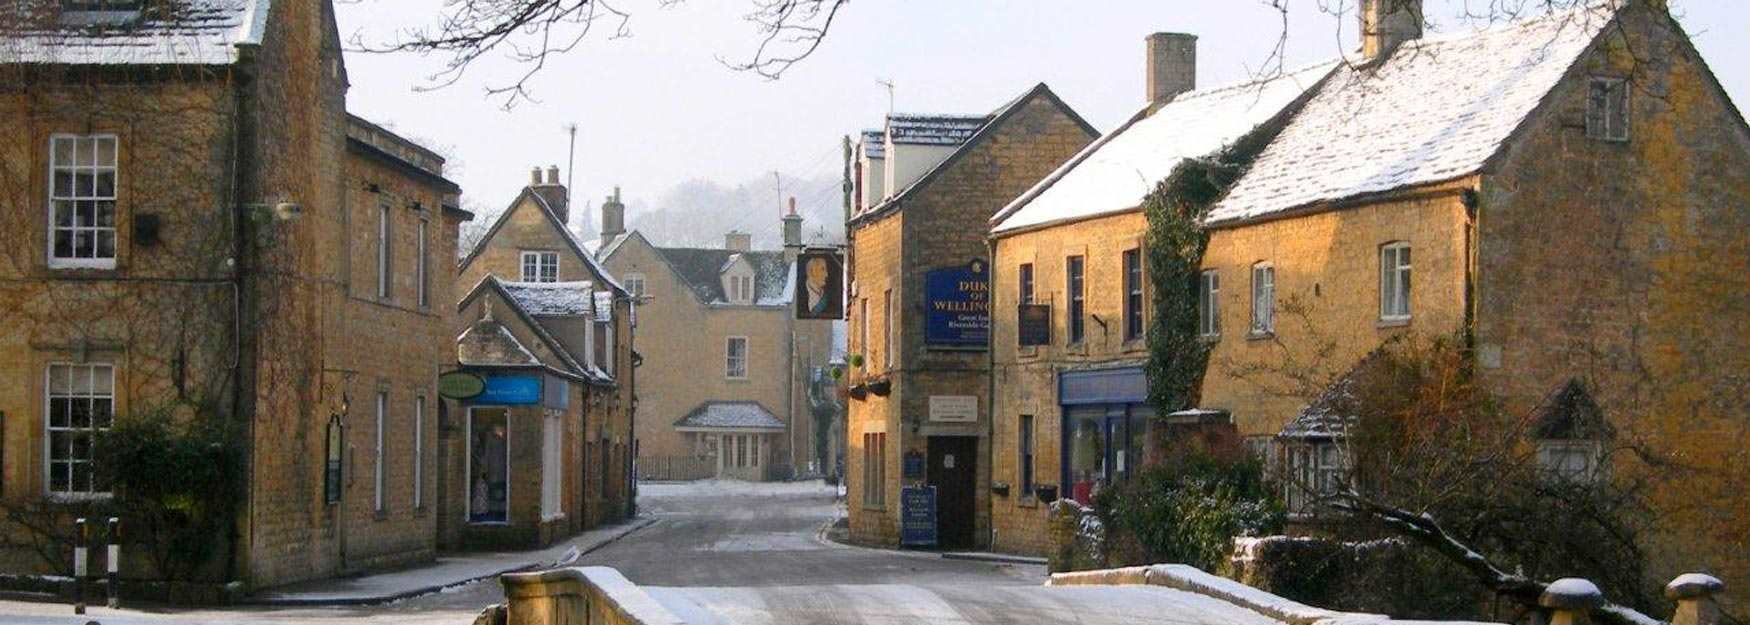 A wintery view of Bourton on the Water